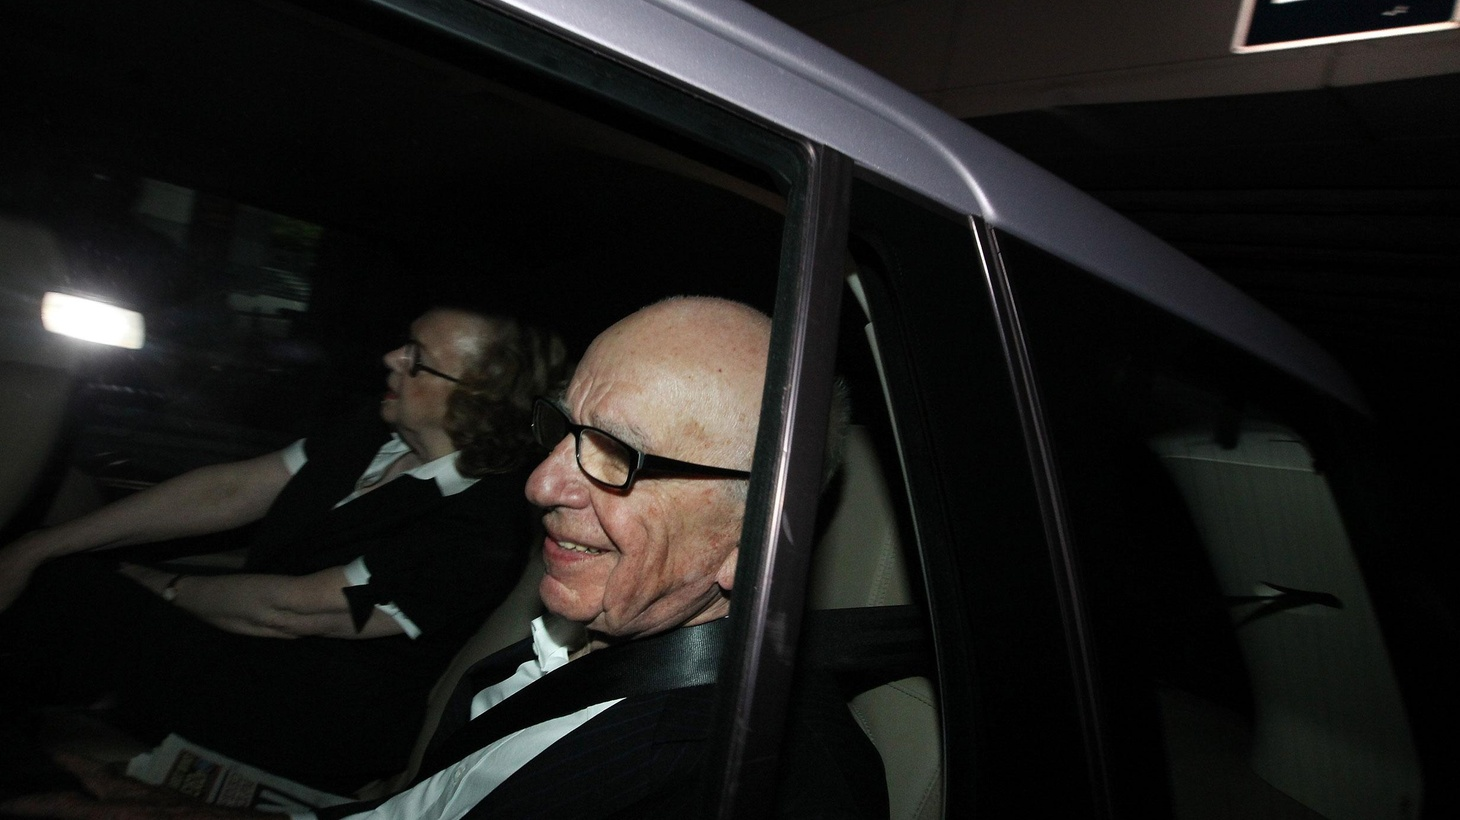 """Growing scandal has forced """"an extraordinary reversal of fortune"""" for Rupert Murdoch. We talk with Carl Bernstein and others about gathering news by hacking cell phones and bribing police, and..."""